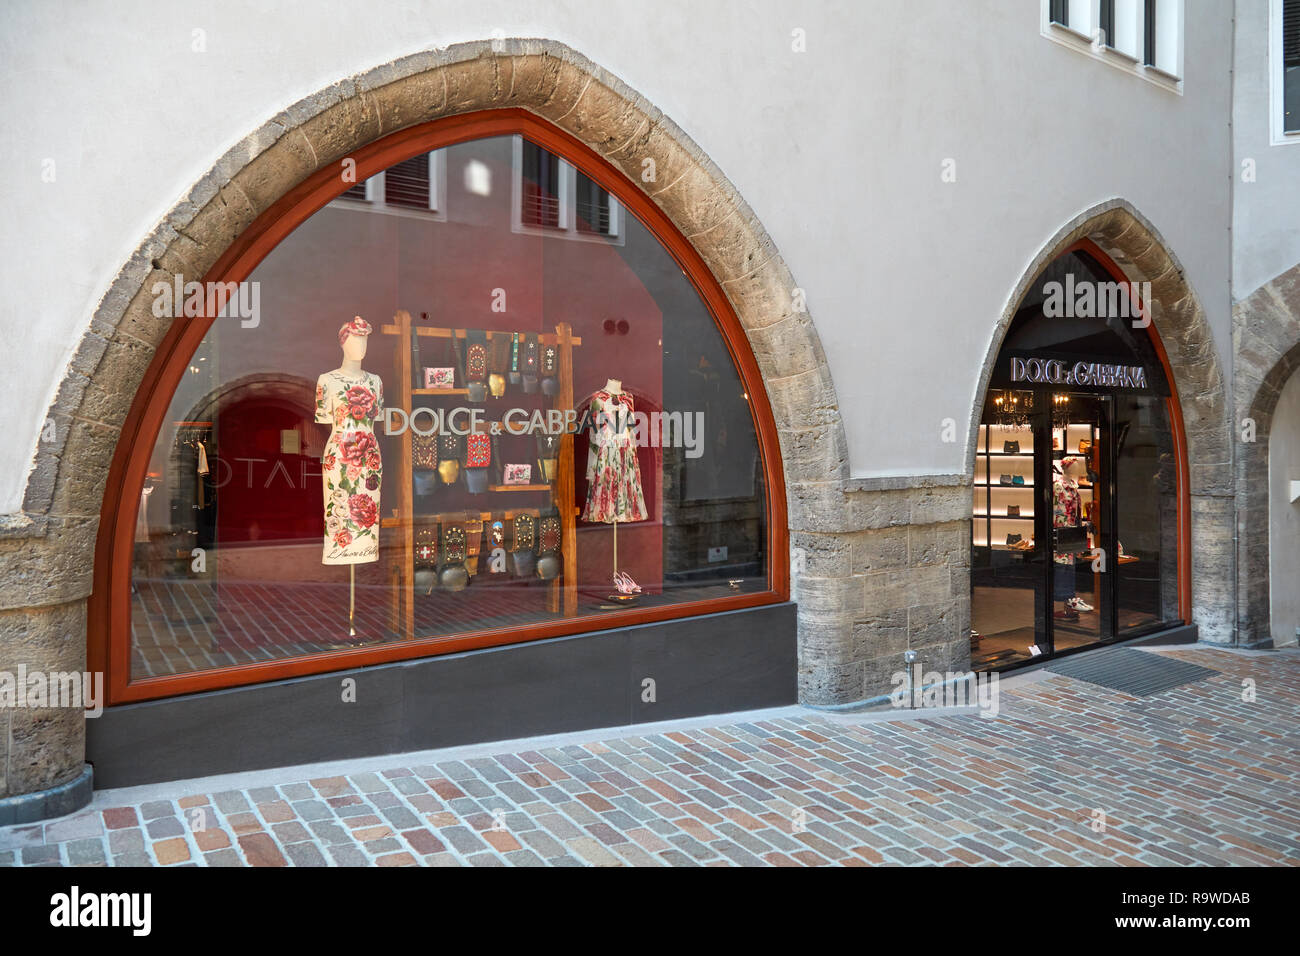 SANKT MORITZ, SWITZERLAND - AUGUST 16, 2018: Dolce Gabbana luxury store in a sunny summer day in Sankt Moritz, Switzerland - Stock Image